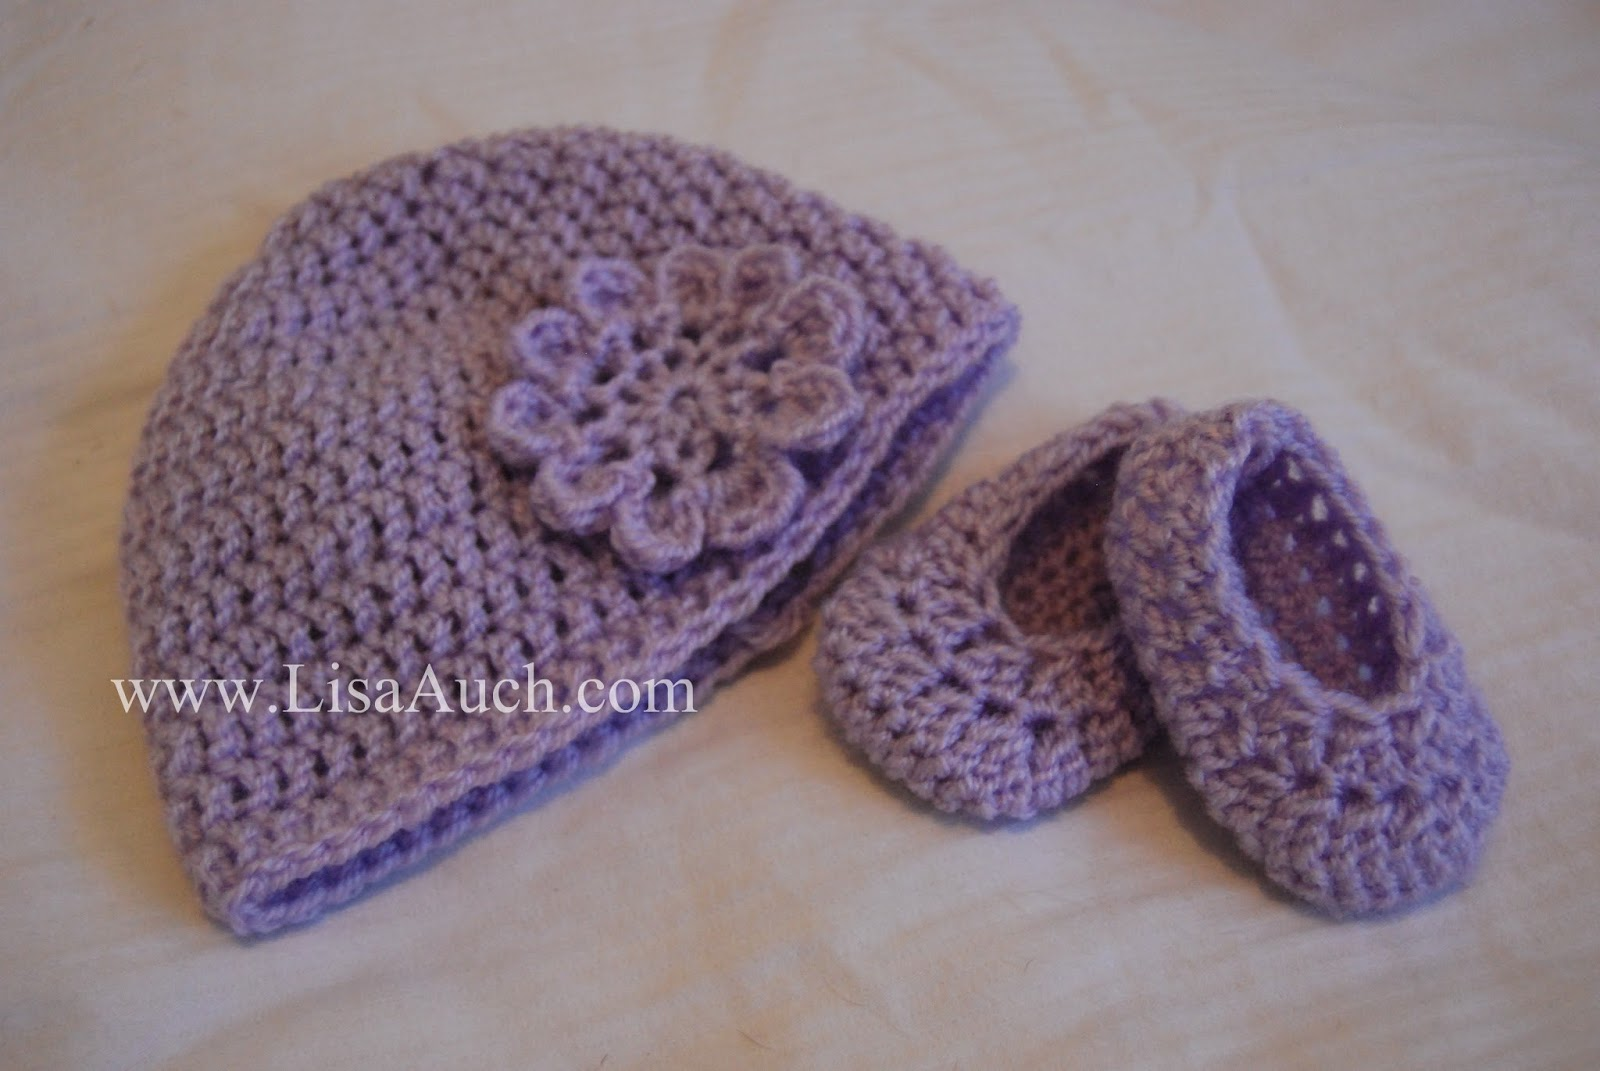 Free Crochet Baby Hat Patterns : free crochet pattern-baby crochet hat pattern-crochet baby booties ...